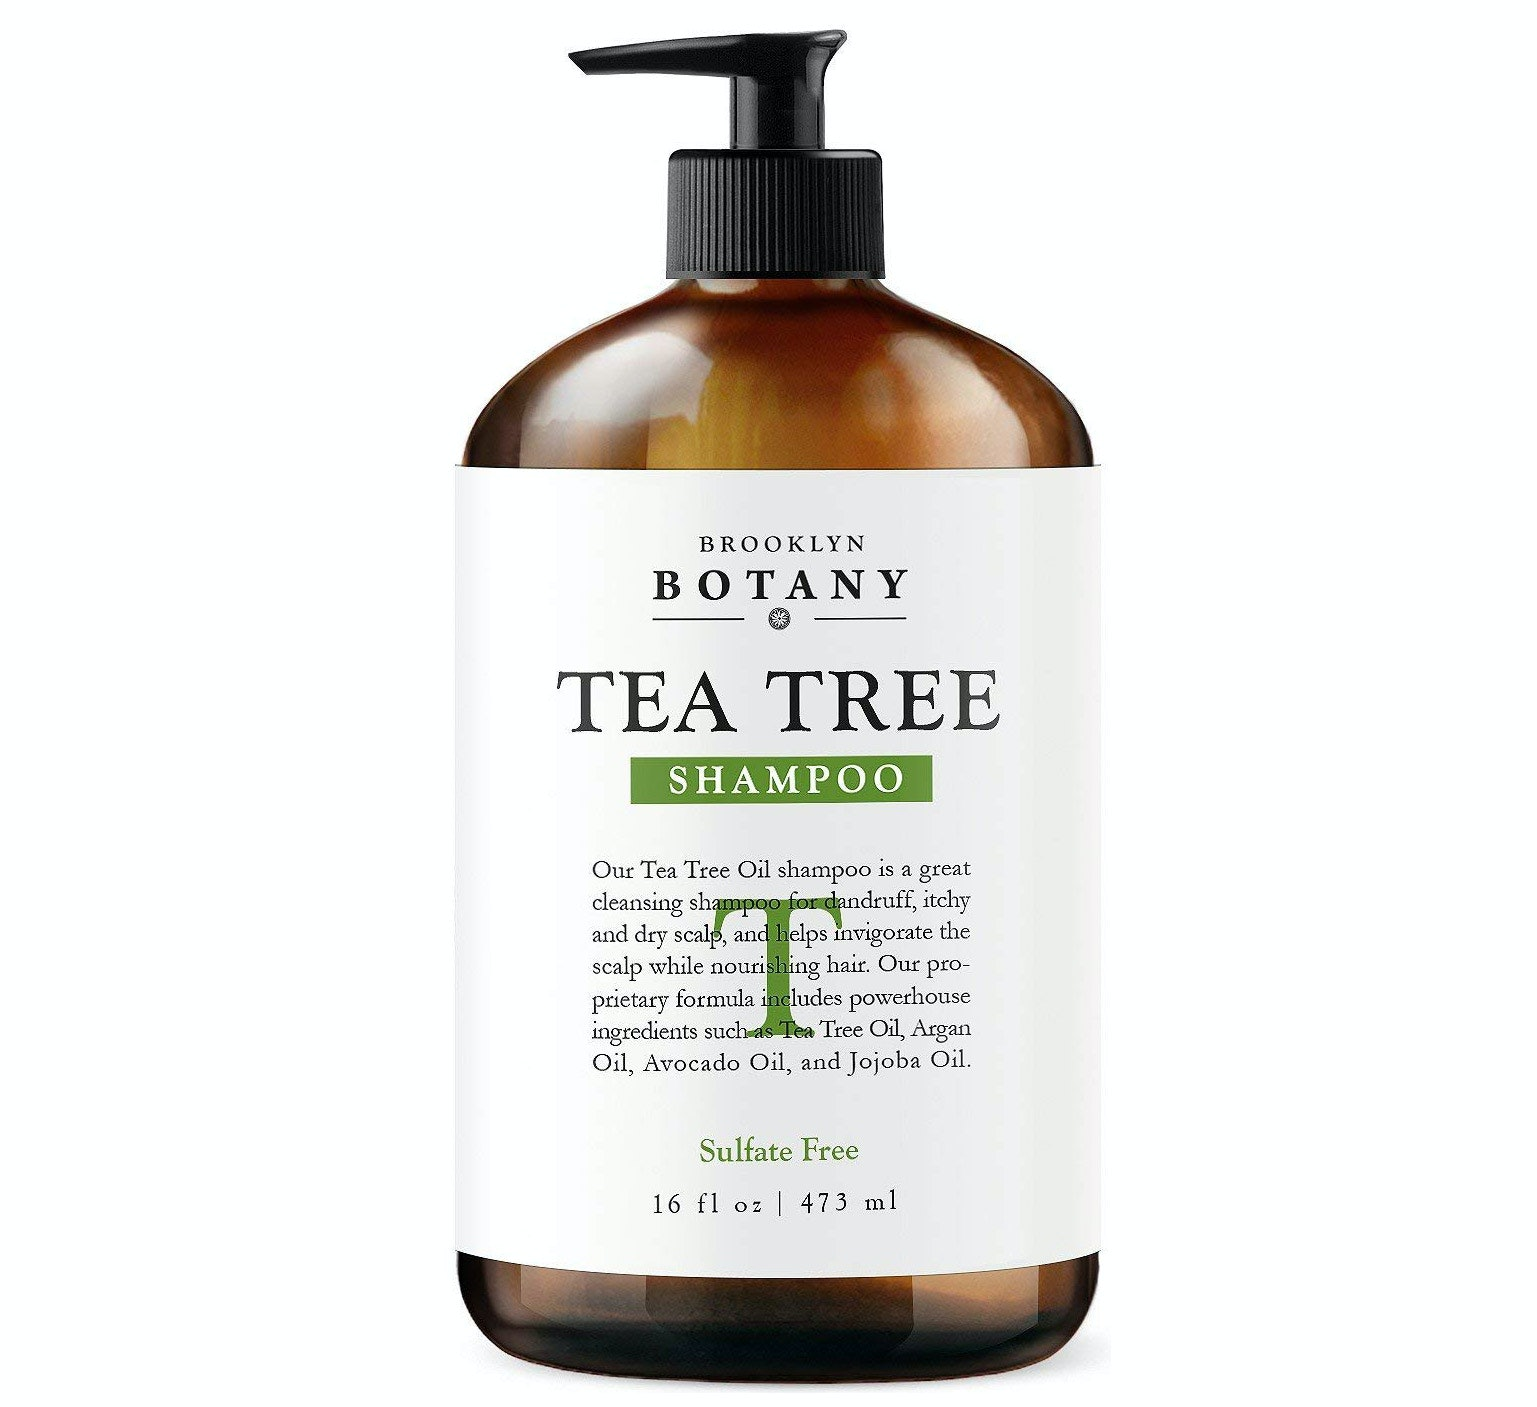 Tea Tree Shampoos For Dandruff